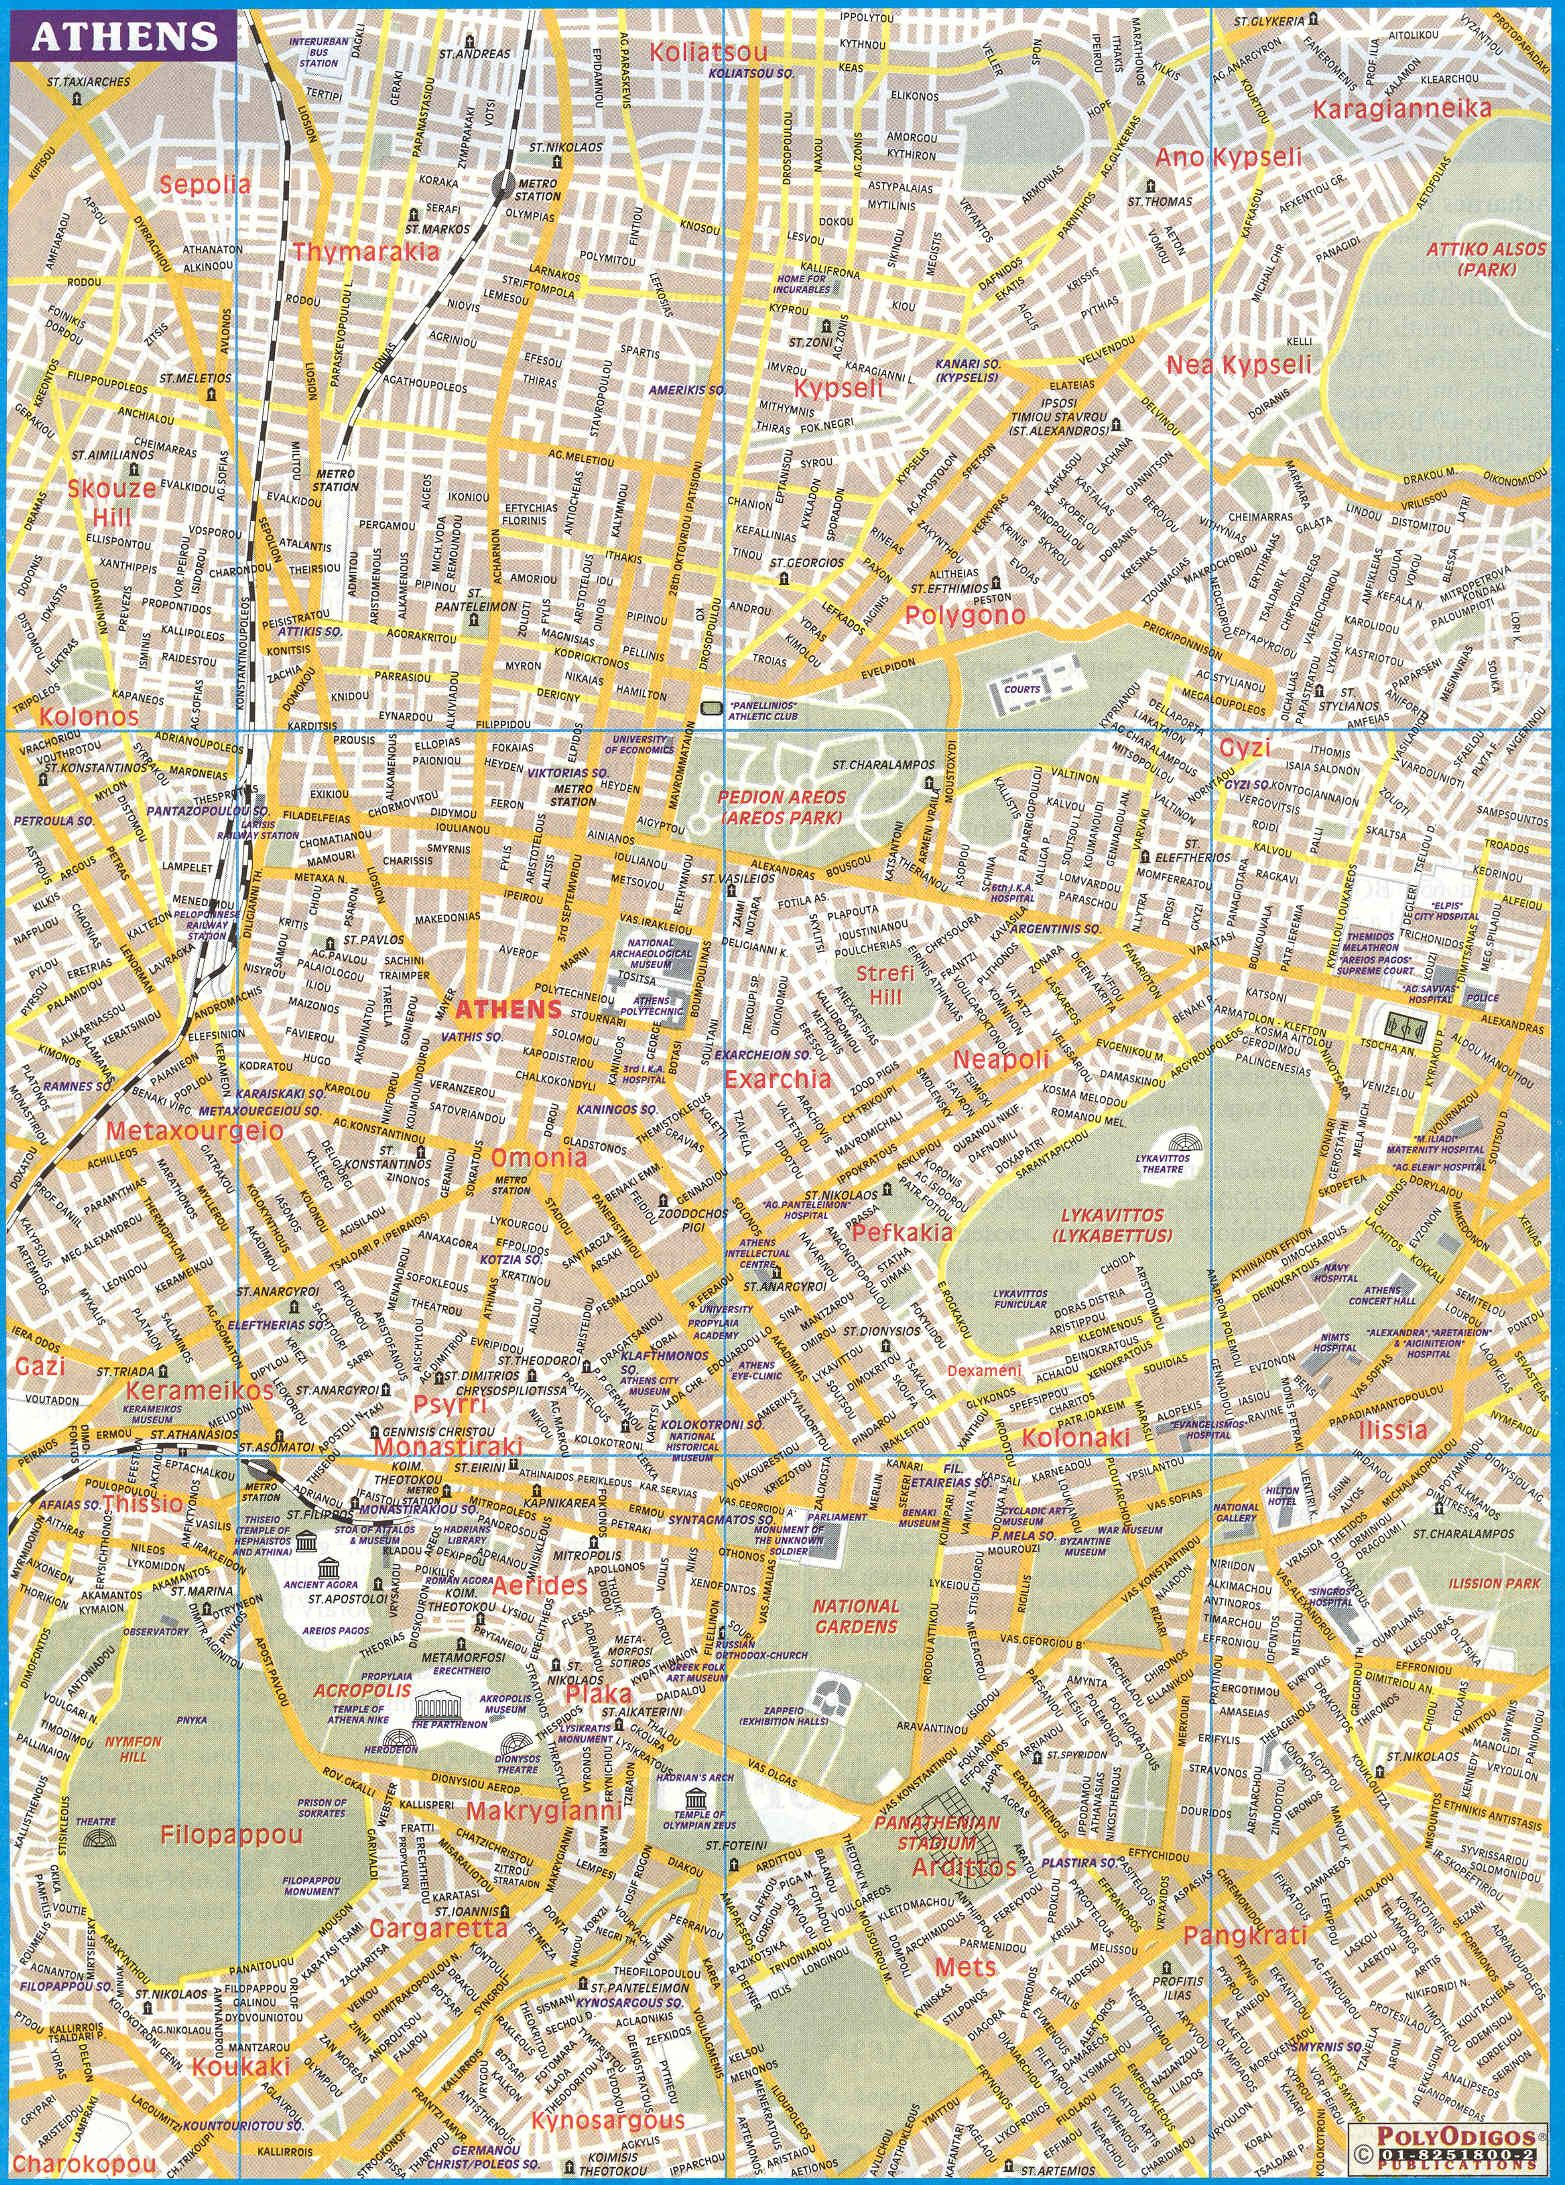 Map Of Athens Greece Street Map of Athens, Greece | Travel | Athens map, Athens city